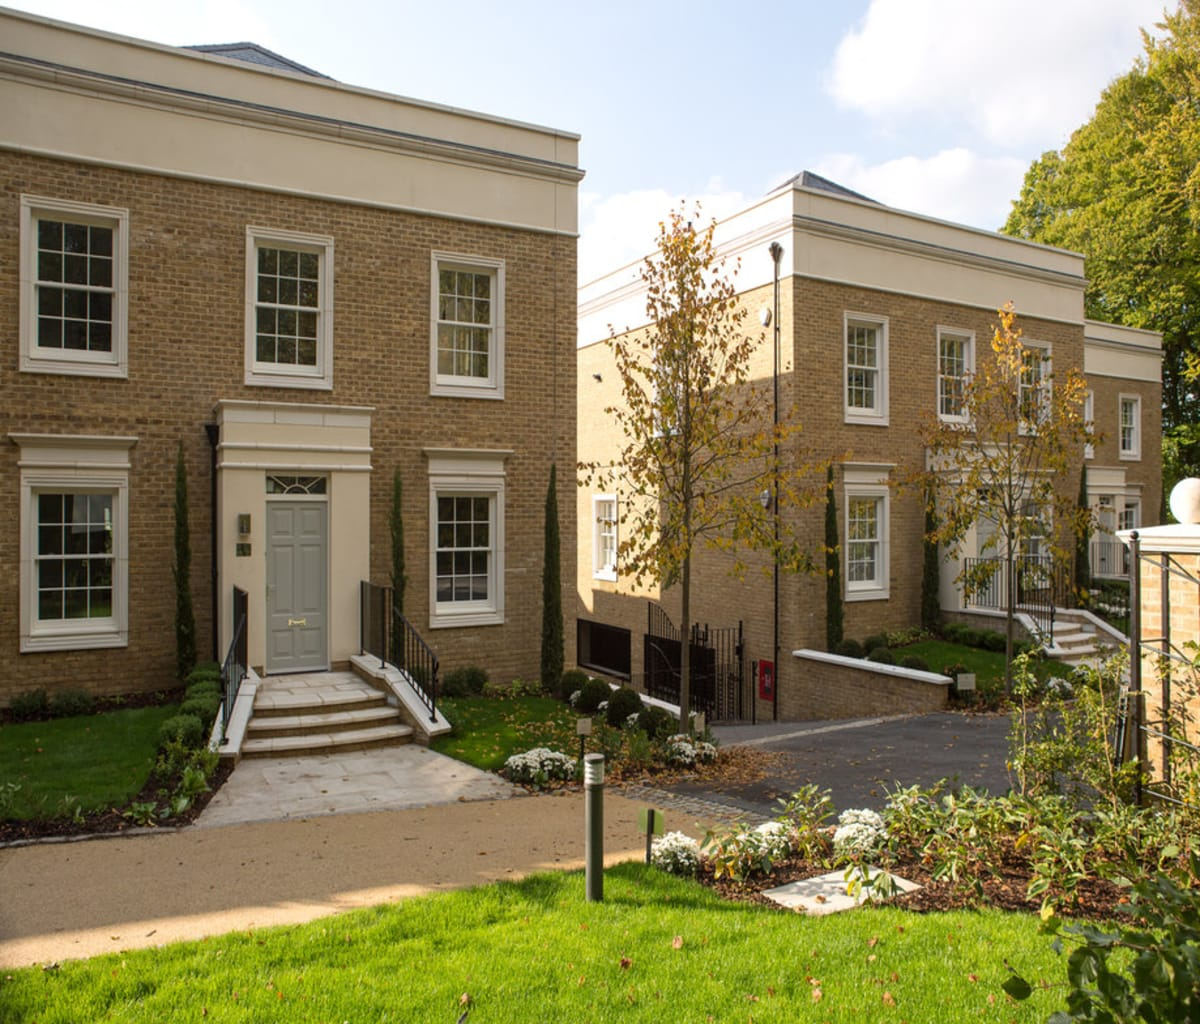 Marshalls cast stone porticos and window surrounds